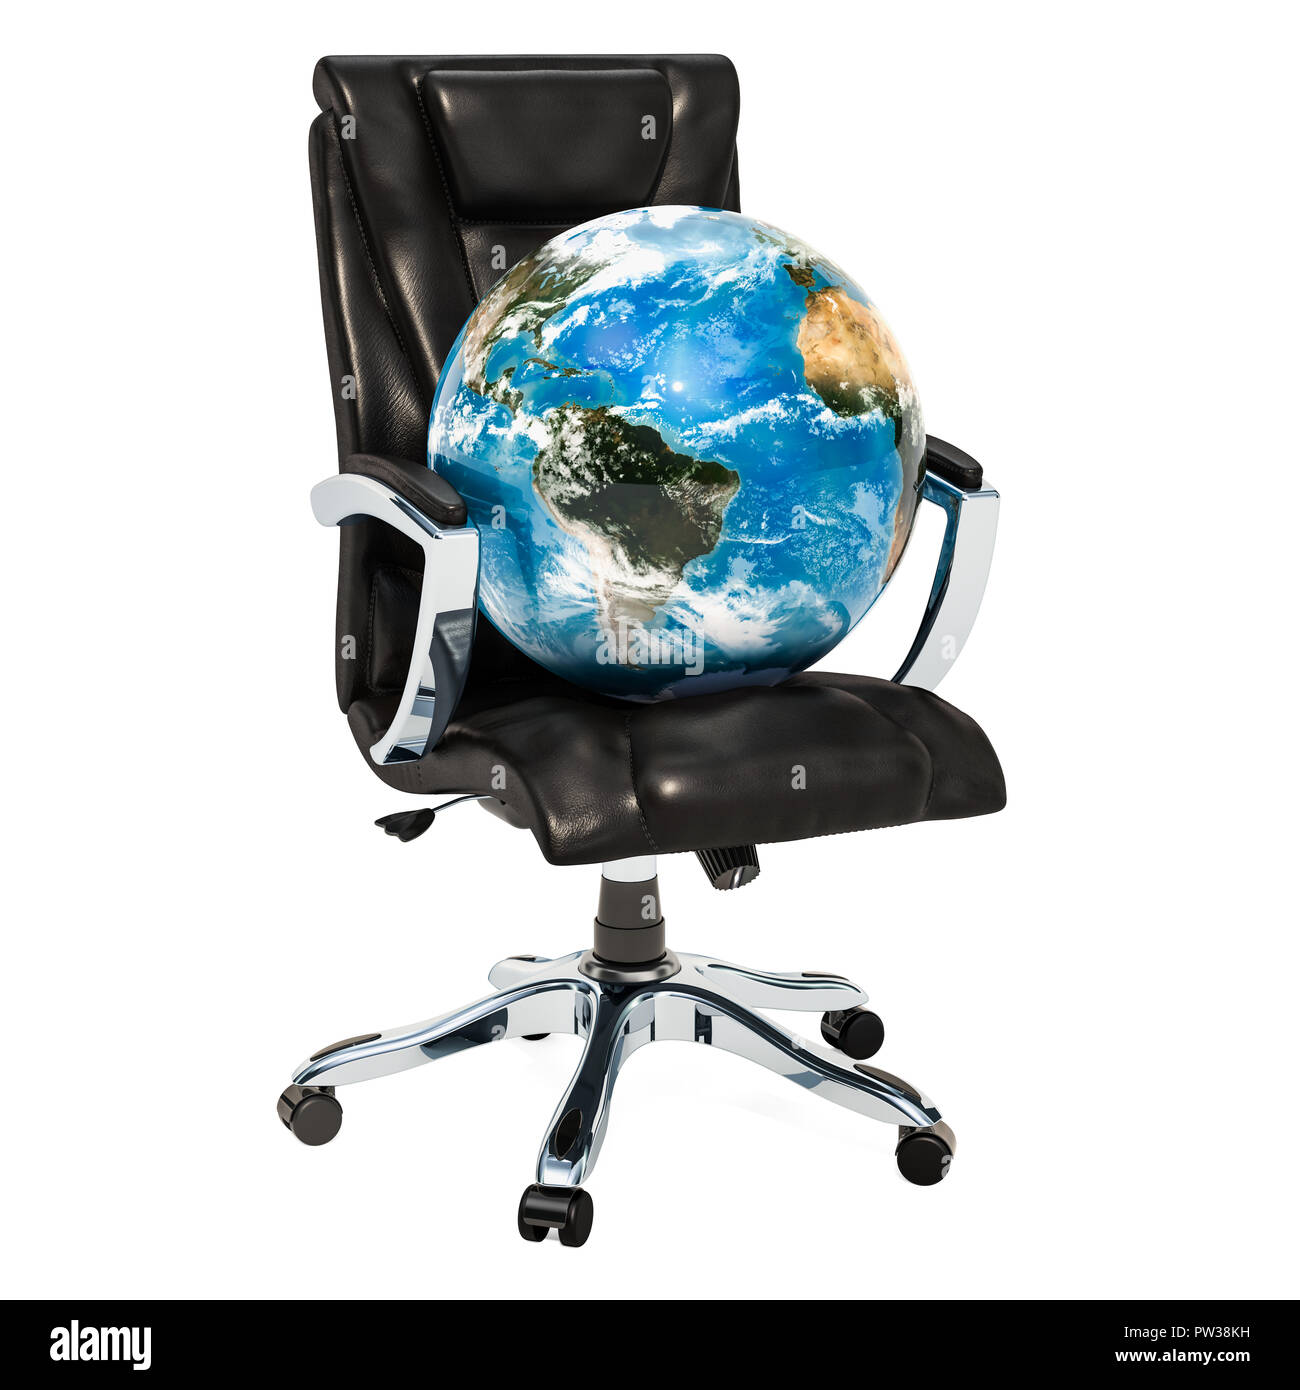 Pleasing Office Chair With Earth Globe Concept 3D Rendering Isolated Inzonedesignstudio Interior Chair Design Inzonedesignstudiocom